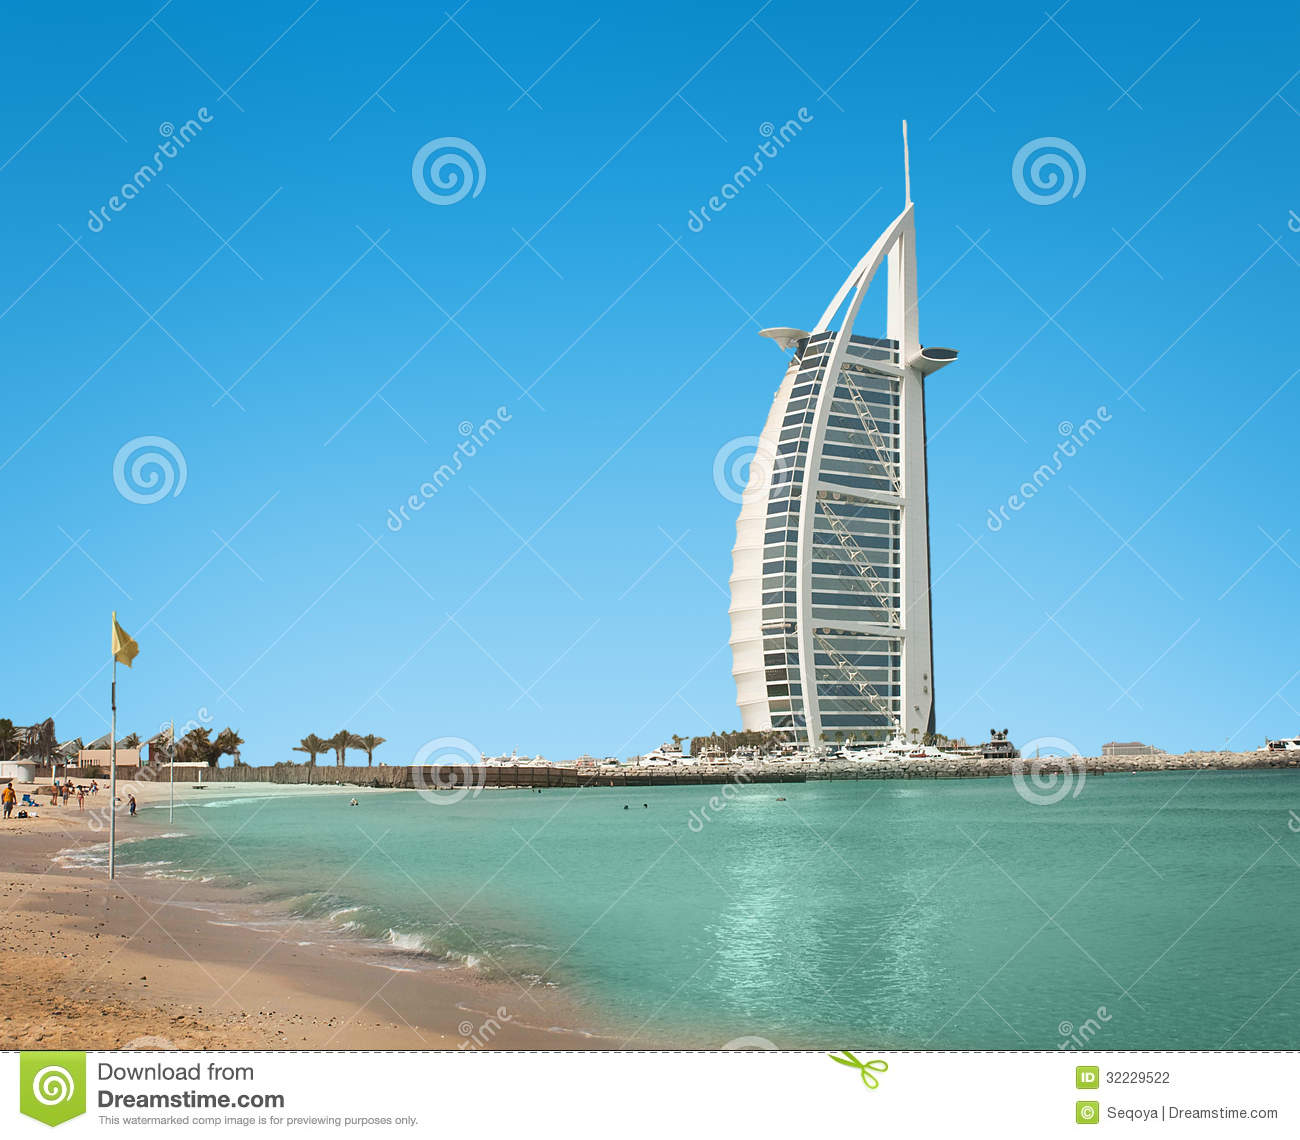 Burzh al arab is well known hotel editorial photography for The sail hotel dubai